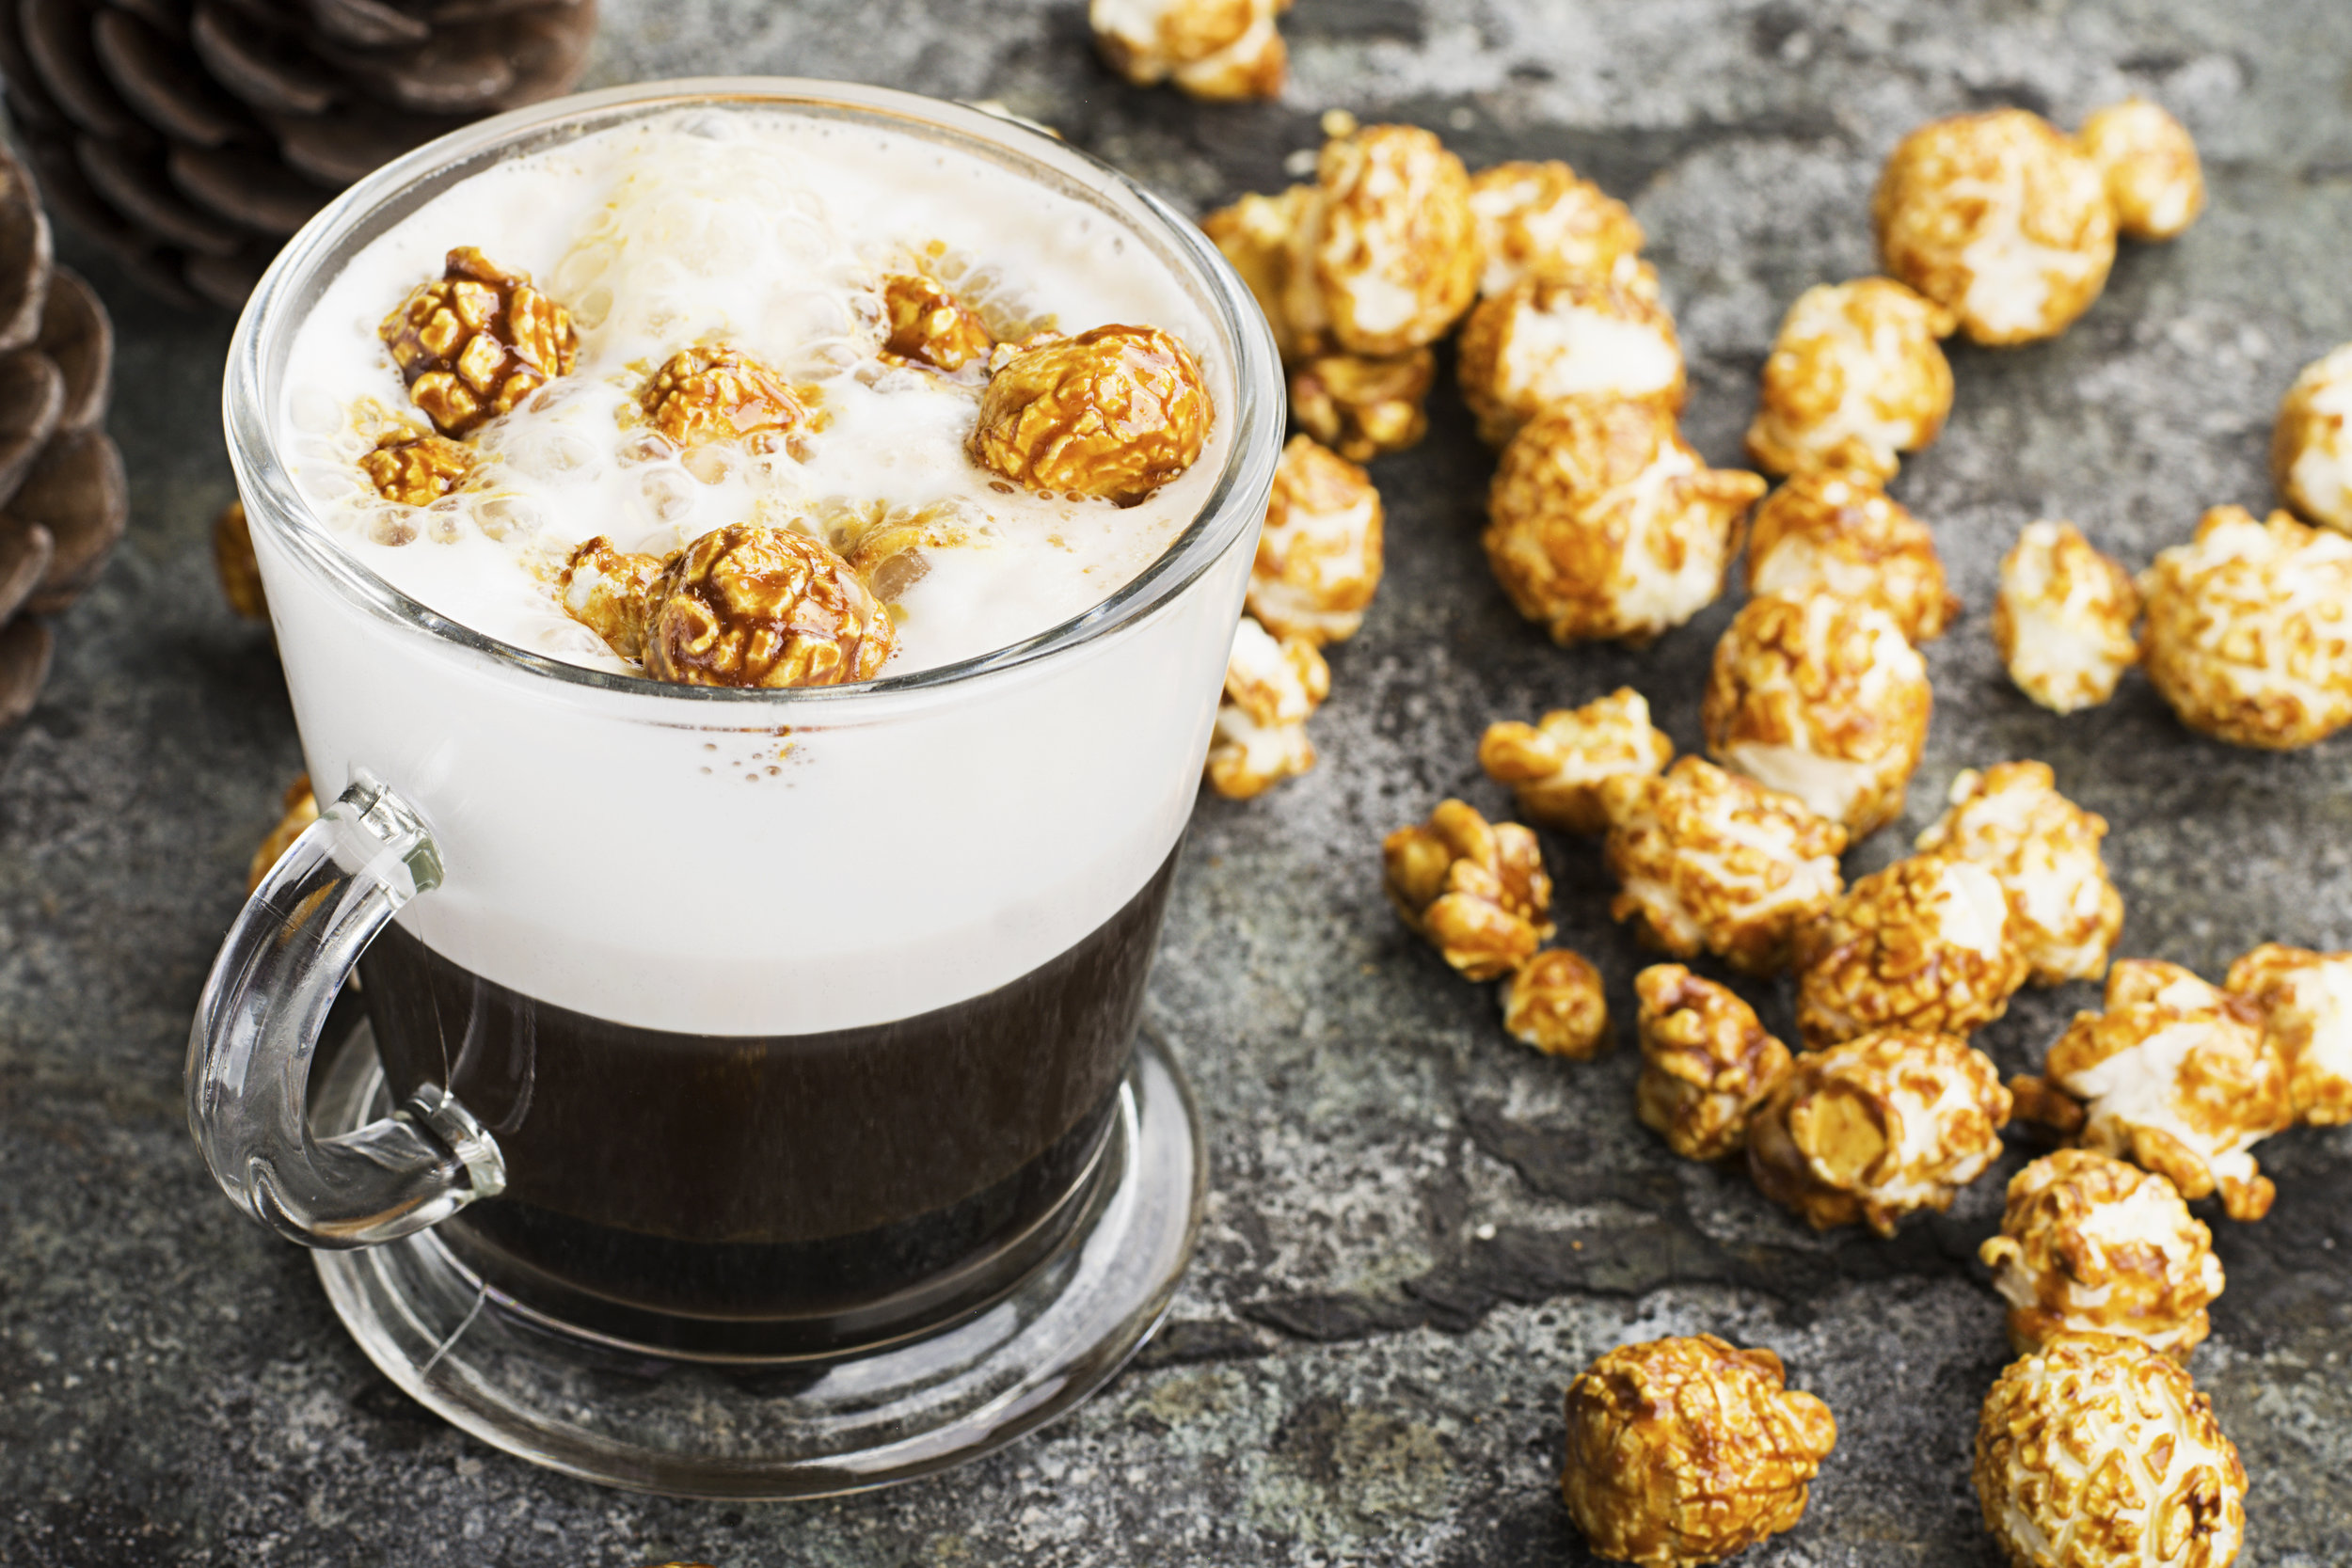 A-glass-of-mouth-watering-sweet-milk-coffee-with-a-creamy-foam-topped-with-caramel-crispy-popcorn-on-a-gray-stone-background.-Selective-focus.-842419862_4770x3180.jpeg